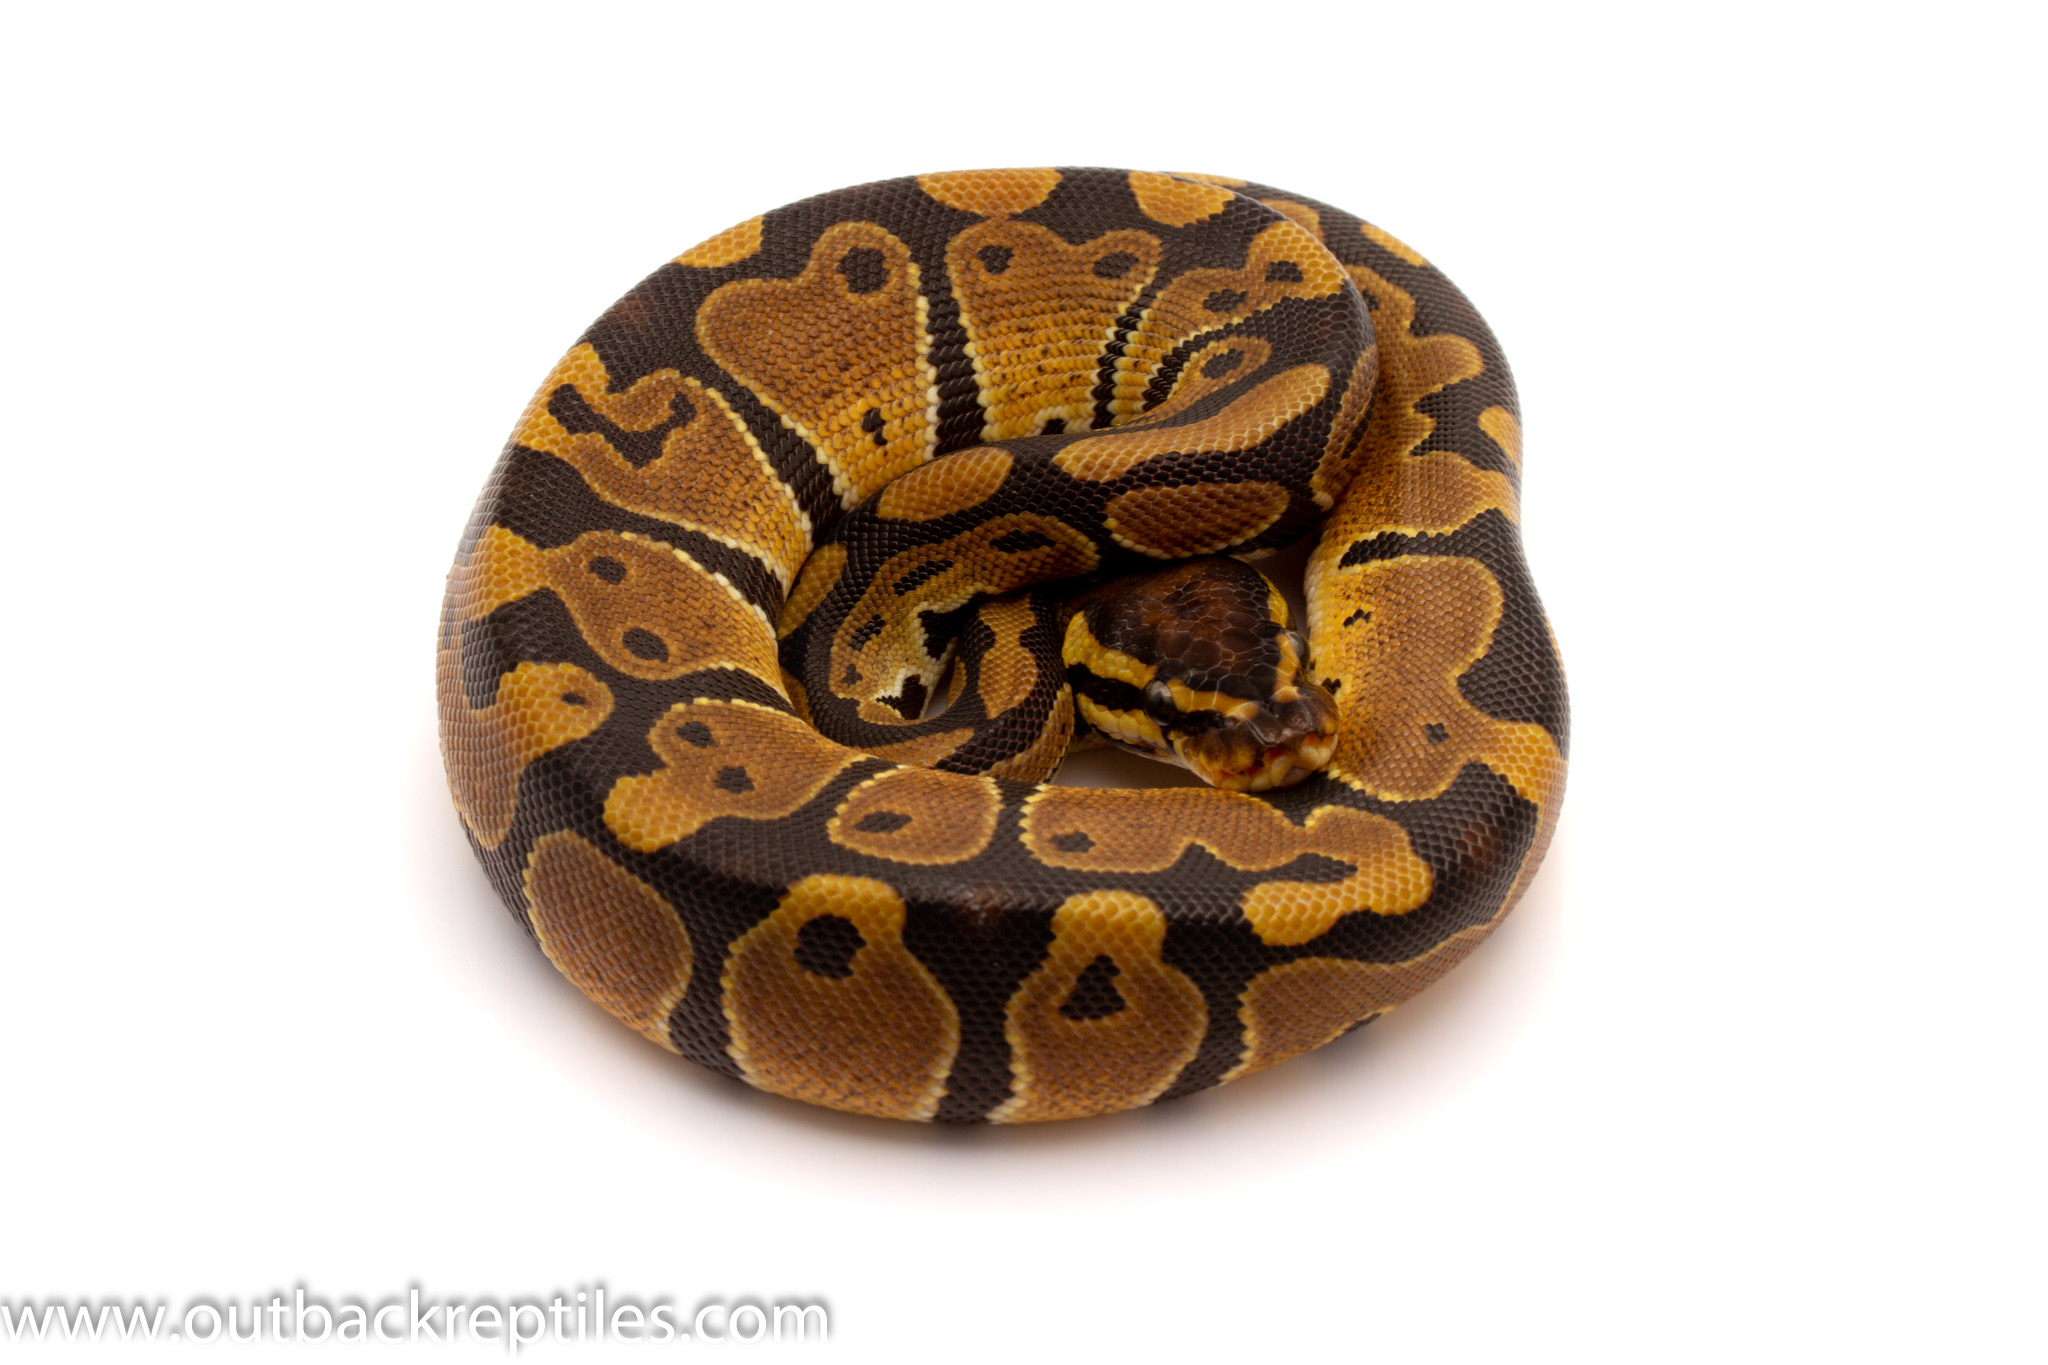 dh ghost pied ball python for sale